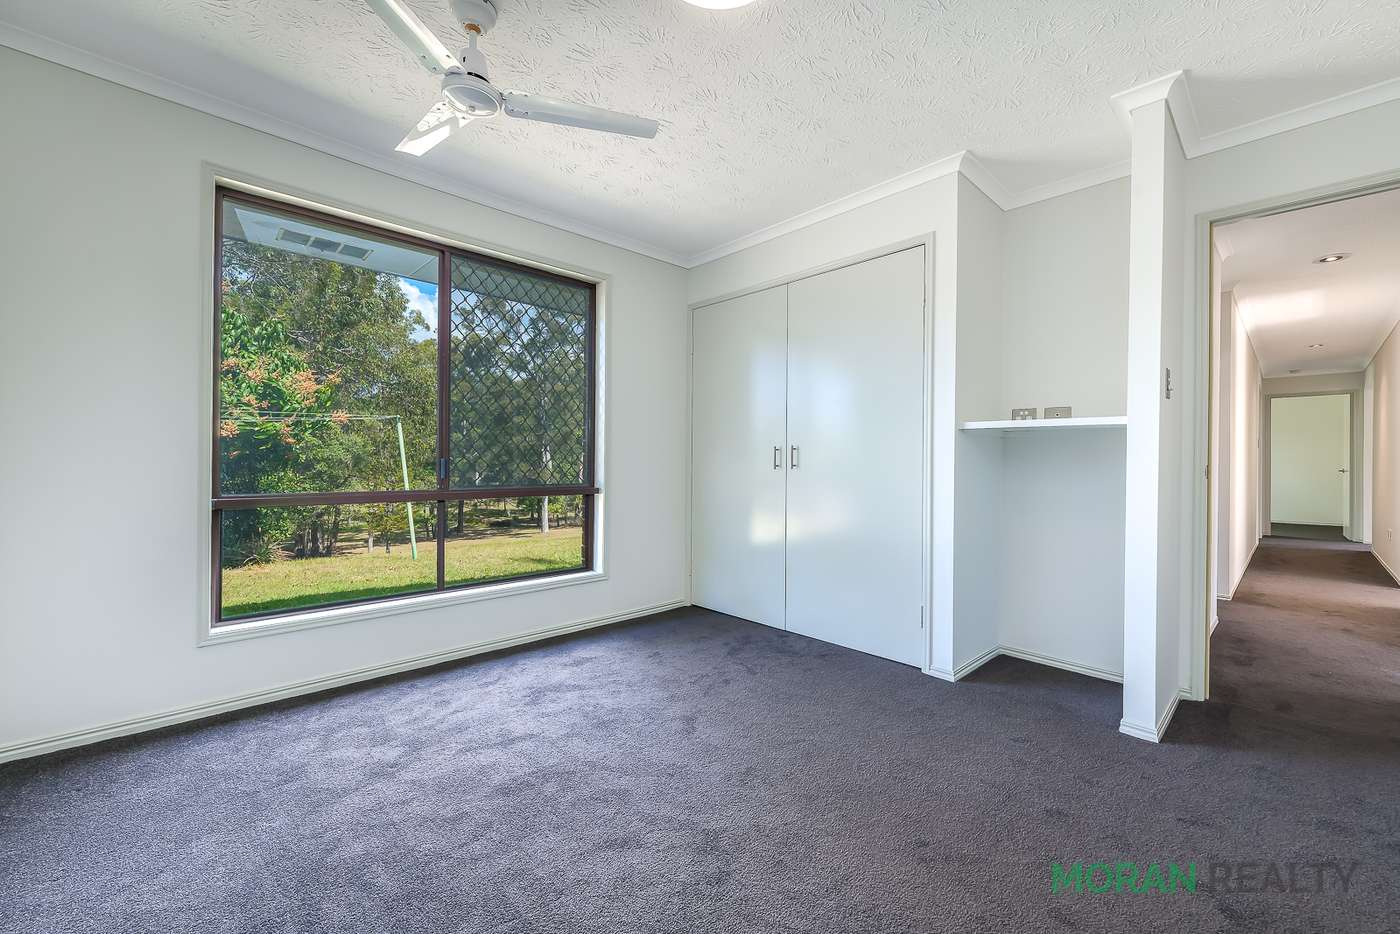 Seventh view of Homely house listing, 178 Napper Road, Parkwood QLD 4214